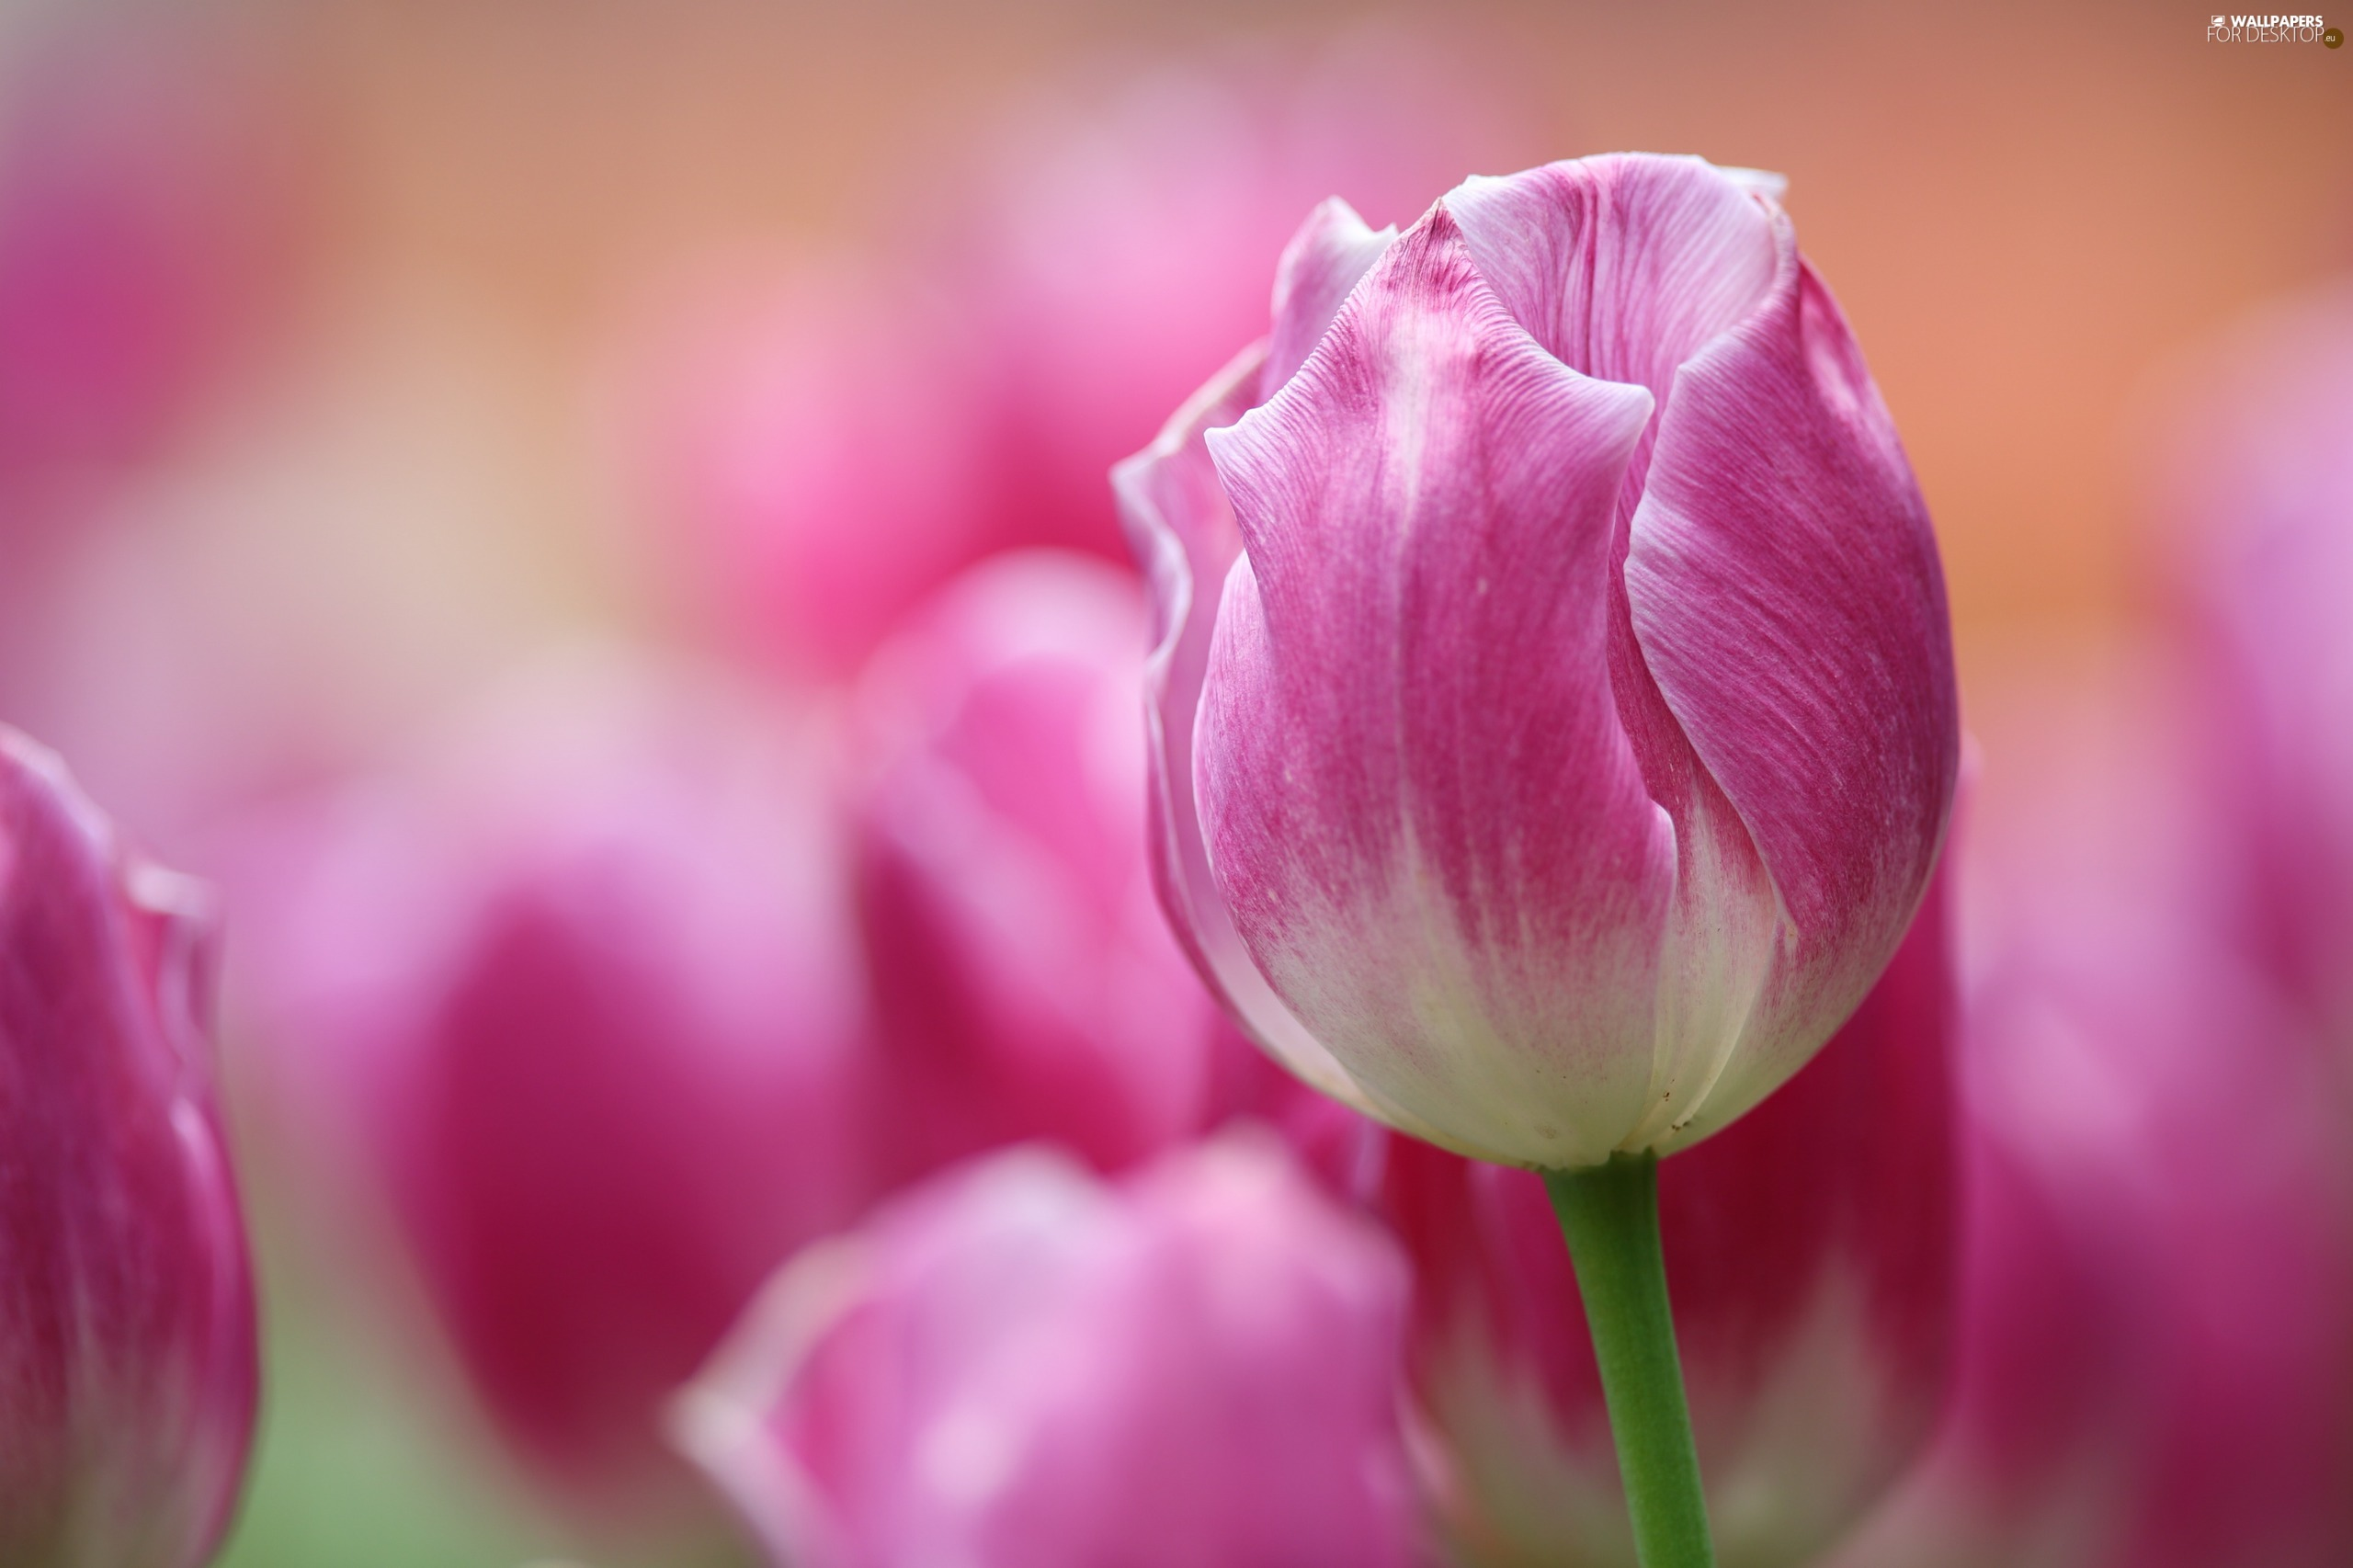 blurry background, Pink-White, tulip